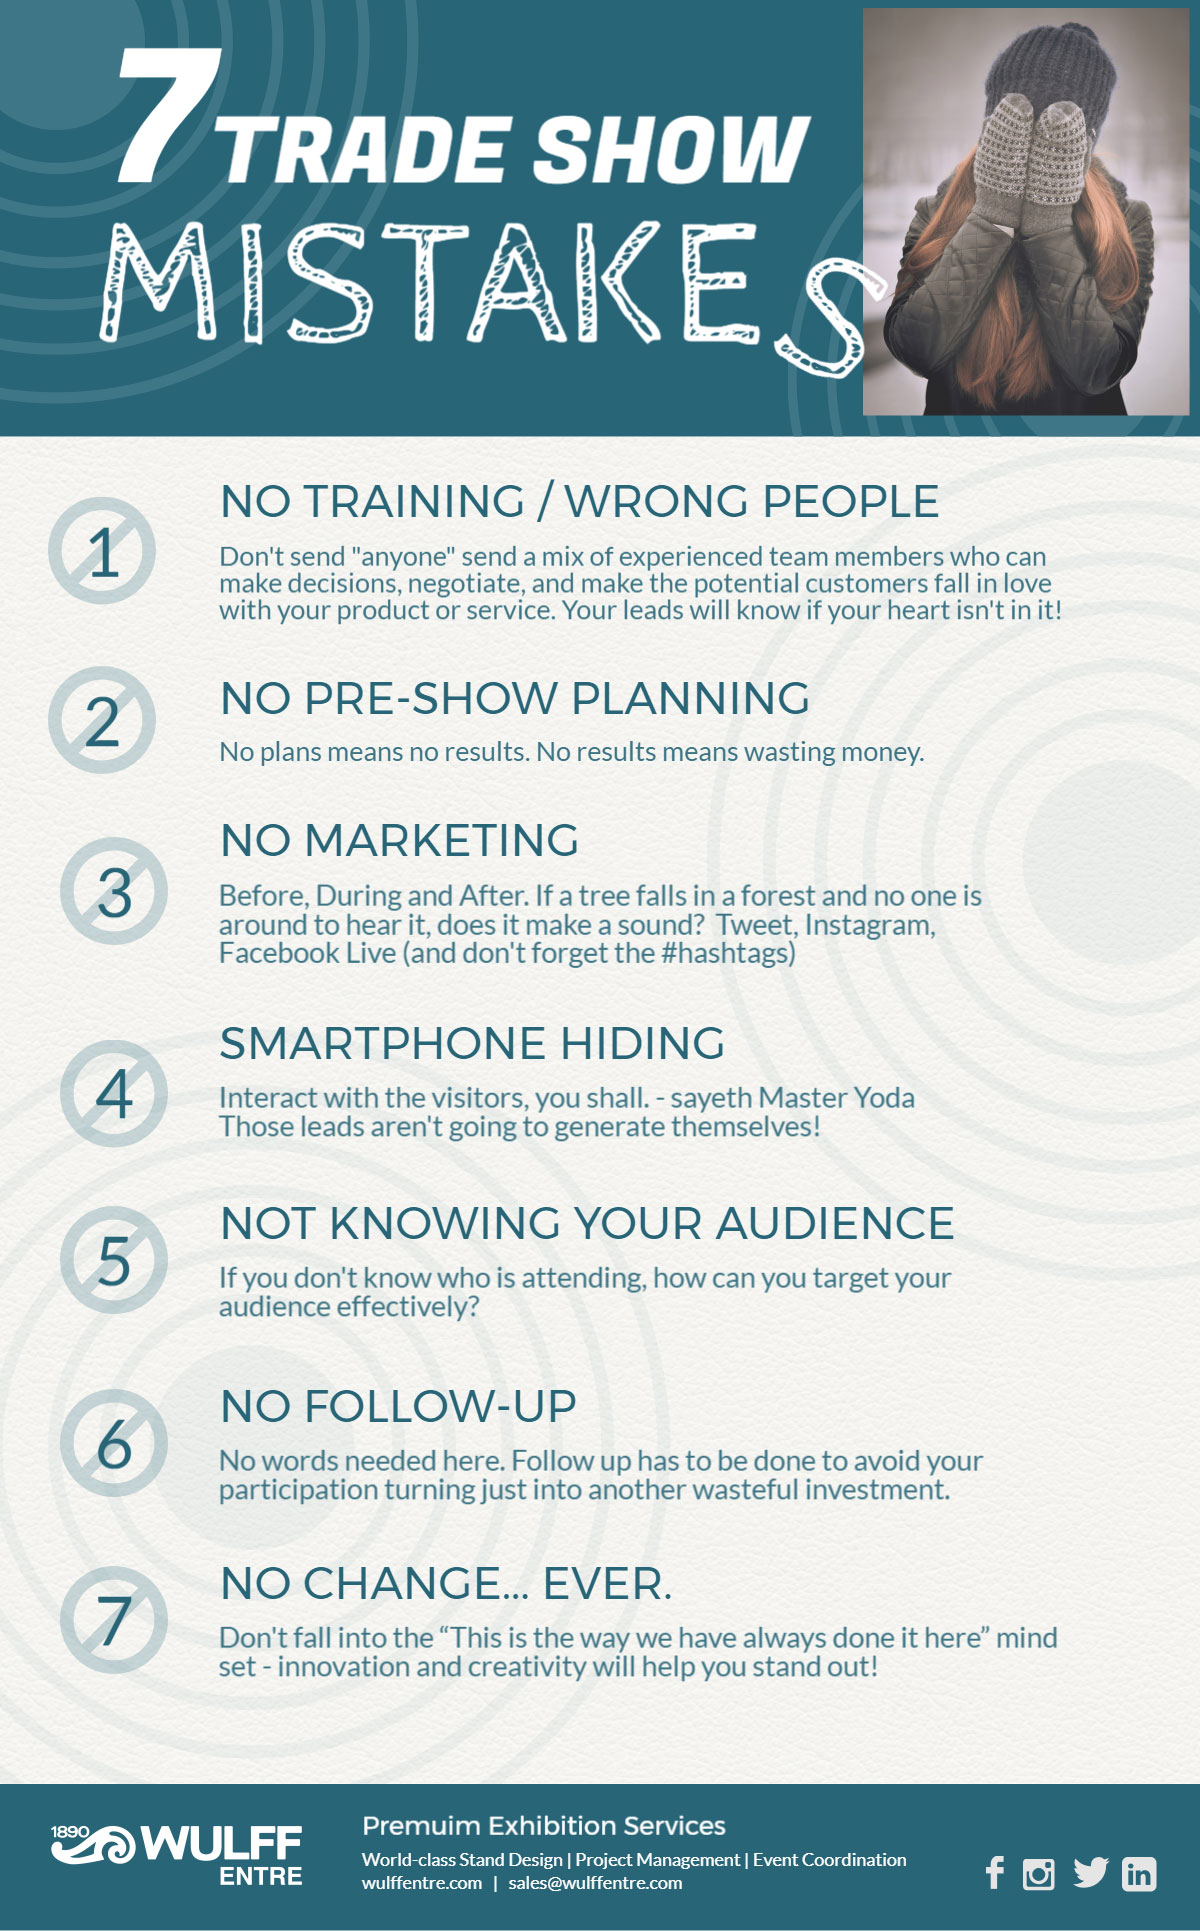 """7 Trade Show Mistakes NO TRAINING / WRONG PEOPLE Don't send """"anyone"""" send a mix of experienced team members who can make decisions, negotiate, and make the potential customers fall in love with your product or service. Your leads will know if your heart isn't in it! NO PRE-SHOW PLANNING No plans means no results. No results means wasting money. NO MARKETING Before, During and After. If a tree falls in a forest and no one is around to hear it, does it make a sound? Tweet, Instagram, Facebook Live (and don't forget the #hashtags) SMARTPHONE HIDING Interact with the visitors, you shall. - sayeth Master Yoda Those leads aren't going to generate themselves! NOT KNOWING YOUR AUDIENCE If you don't know who is attending, how can you target your audience effectively? NO FOLLOW-UP No words needed here. Follow up has to be done to avoid your participation turning just into another wasteful investment. NO CHANGE... EVER. Don't fall into the """"This is the way we have always done it here"""" mind set - innovation and creativity will help you stand out!"""